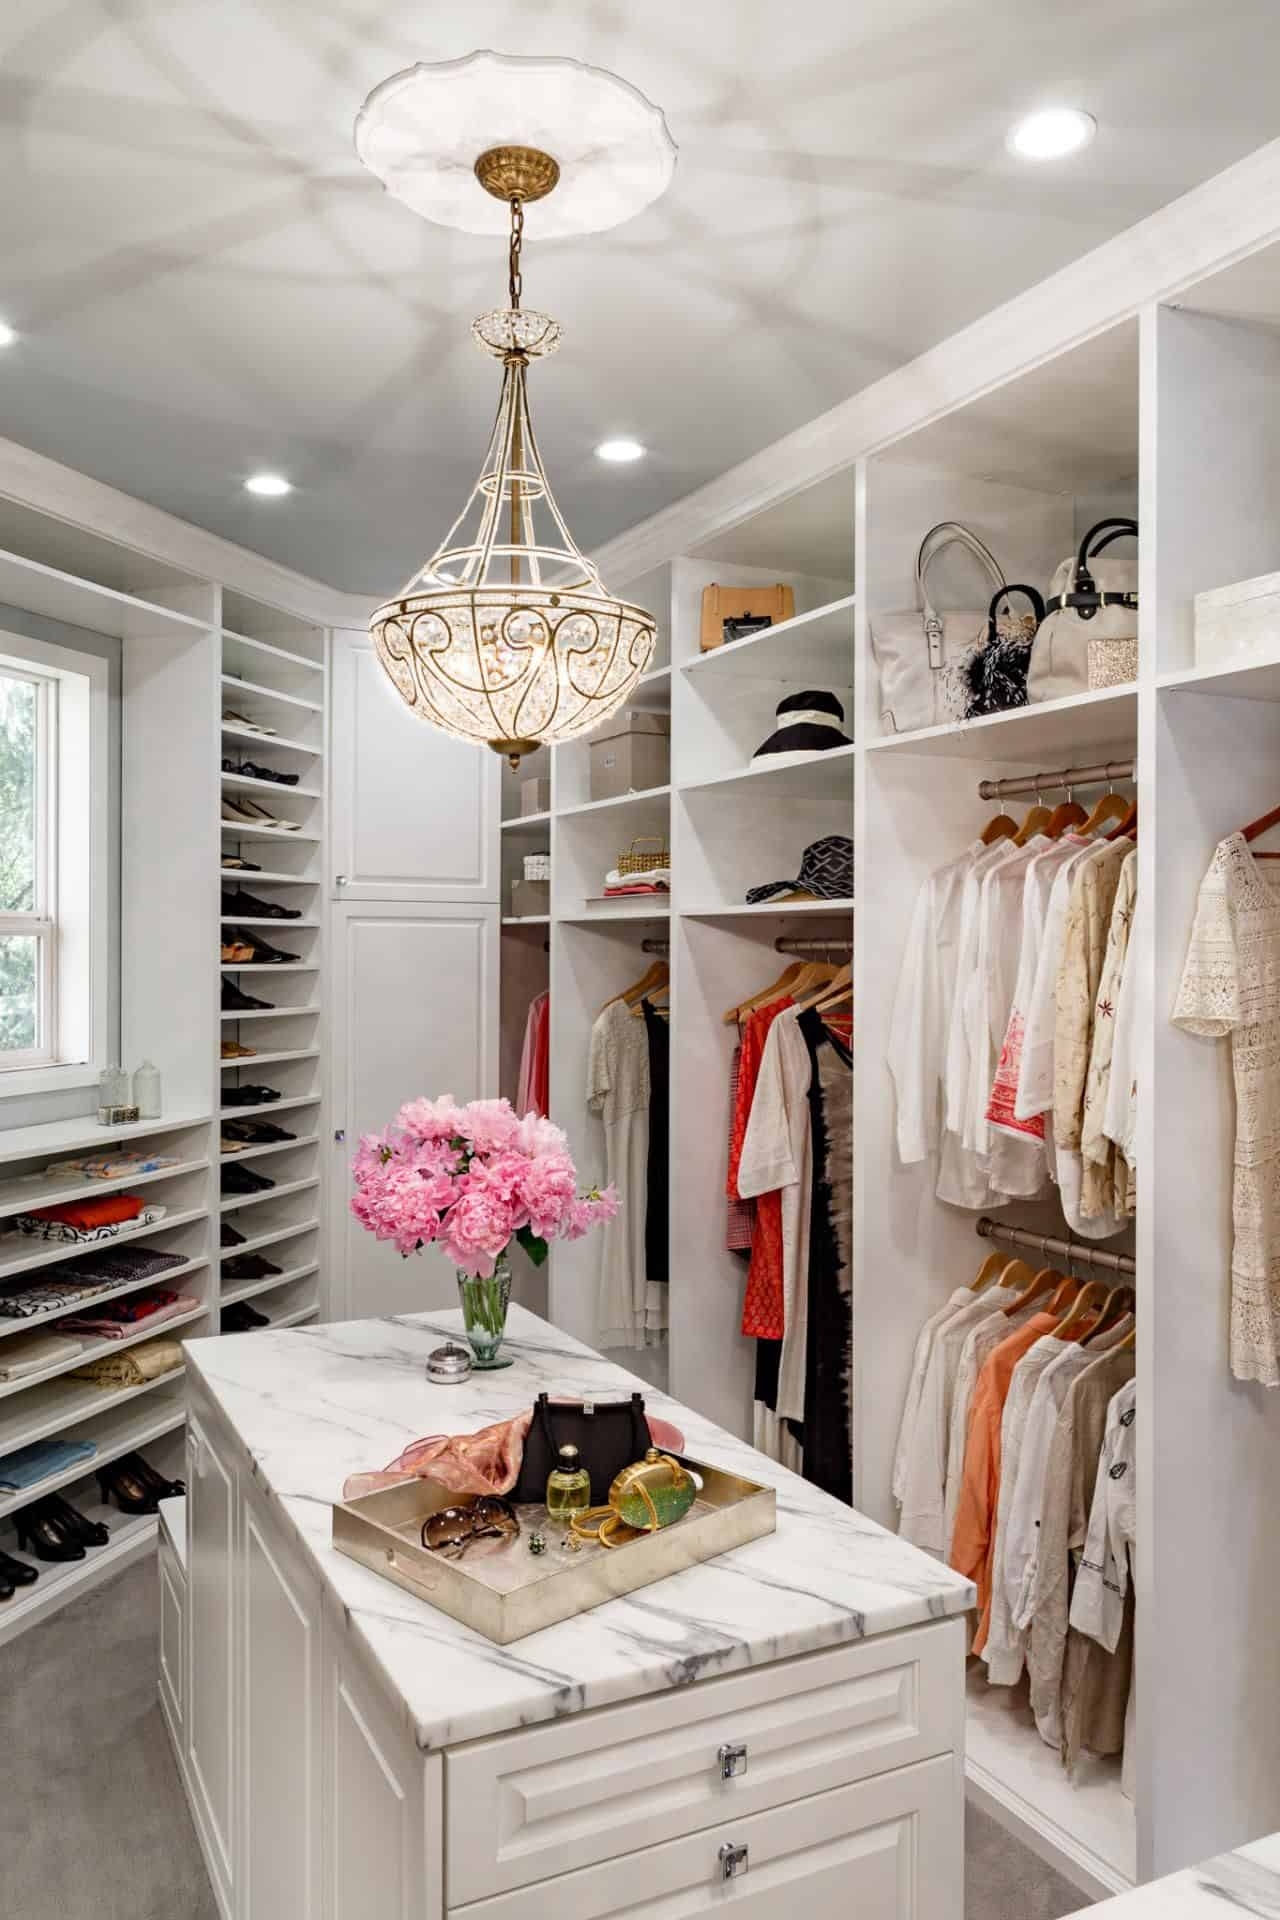 closet with island Closet organization ideas to help you get the most out of your space